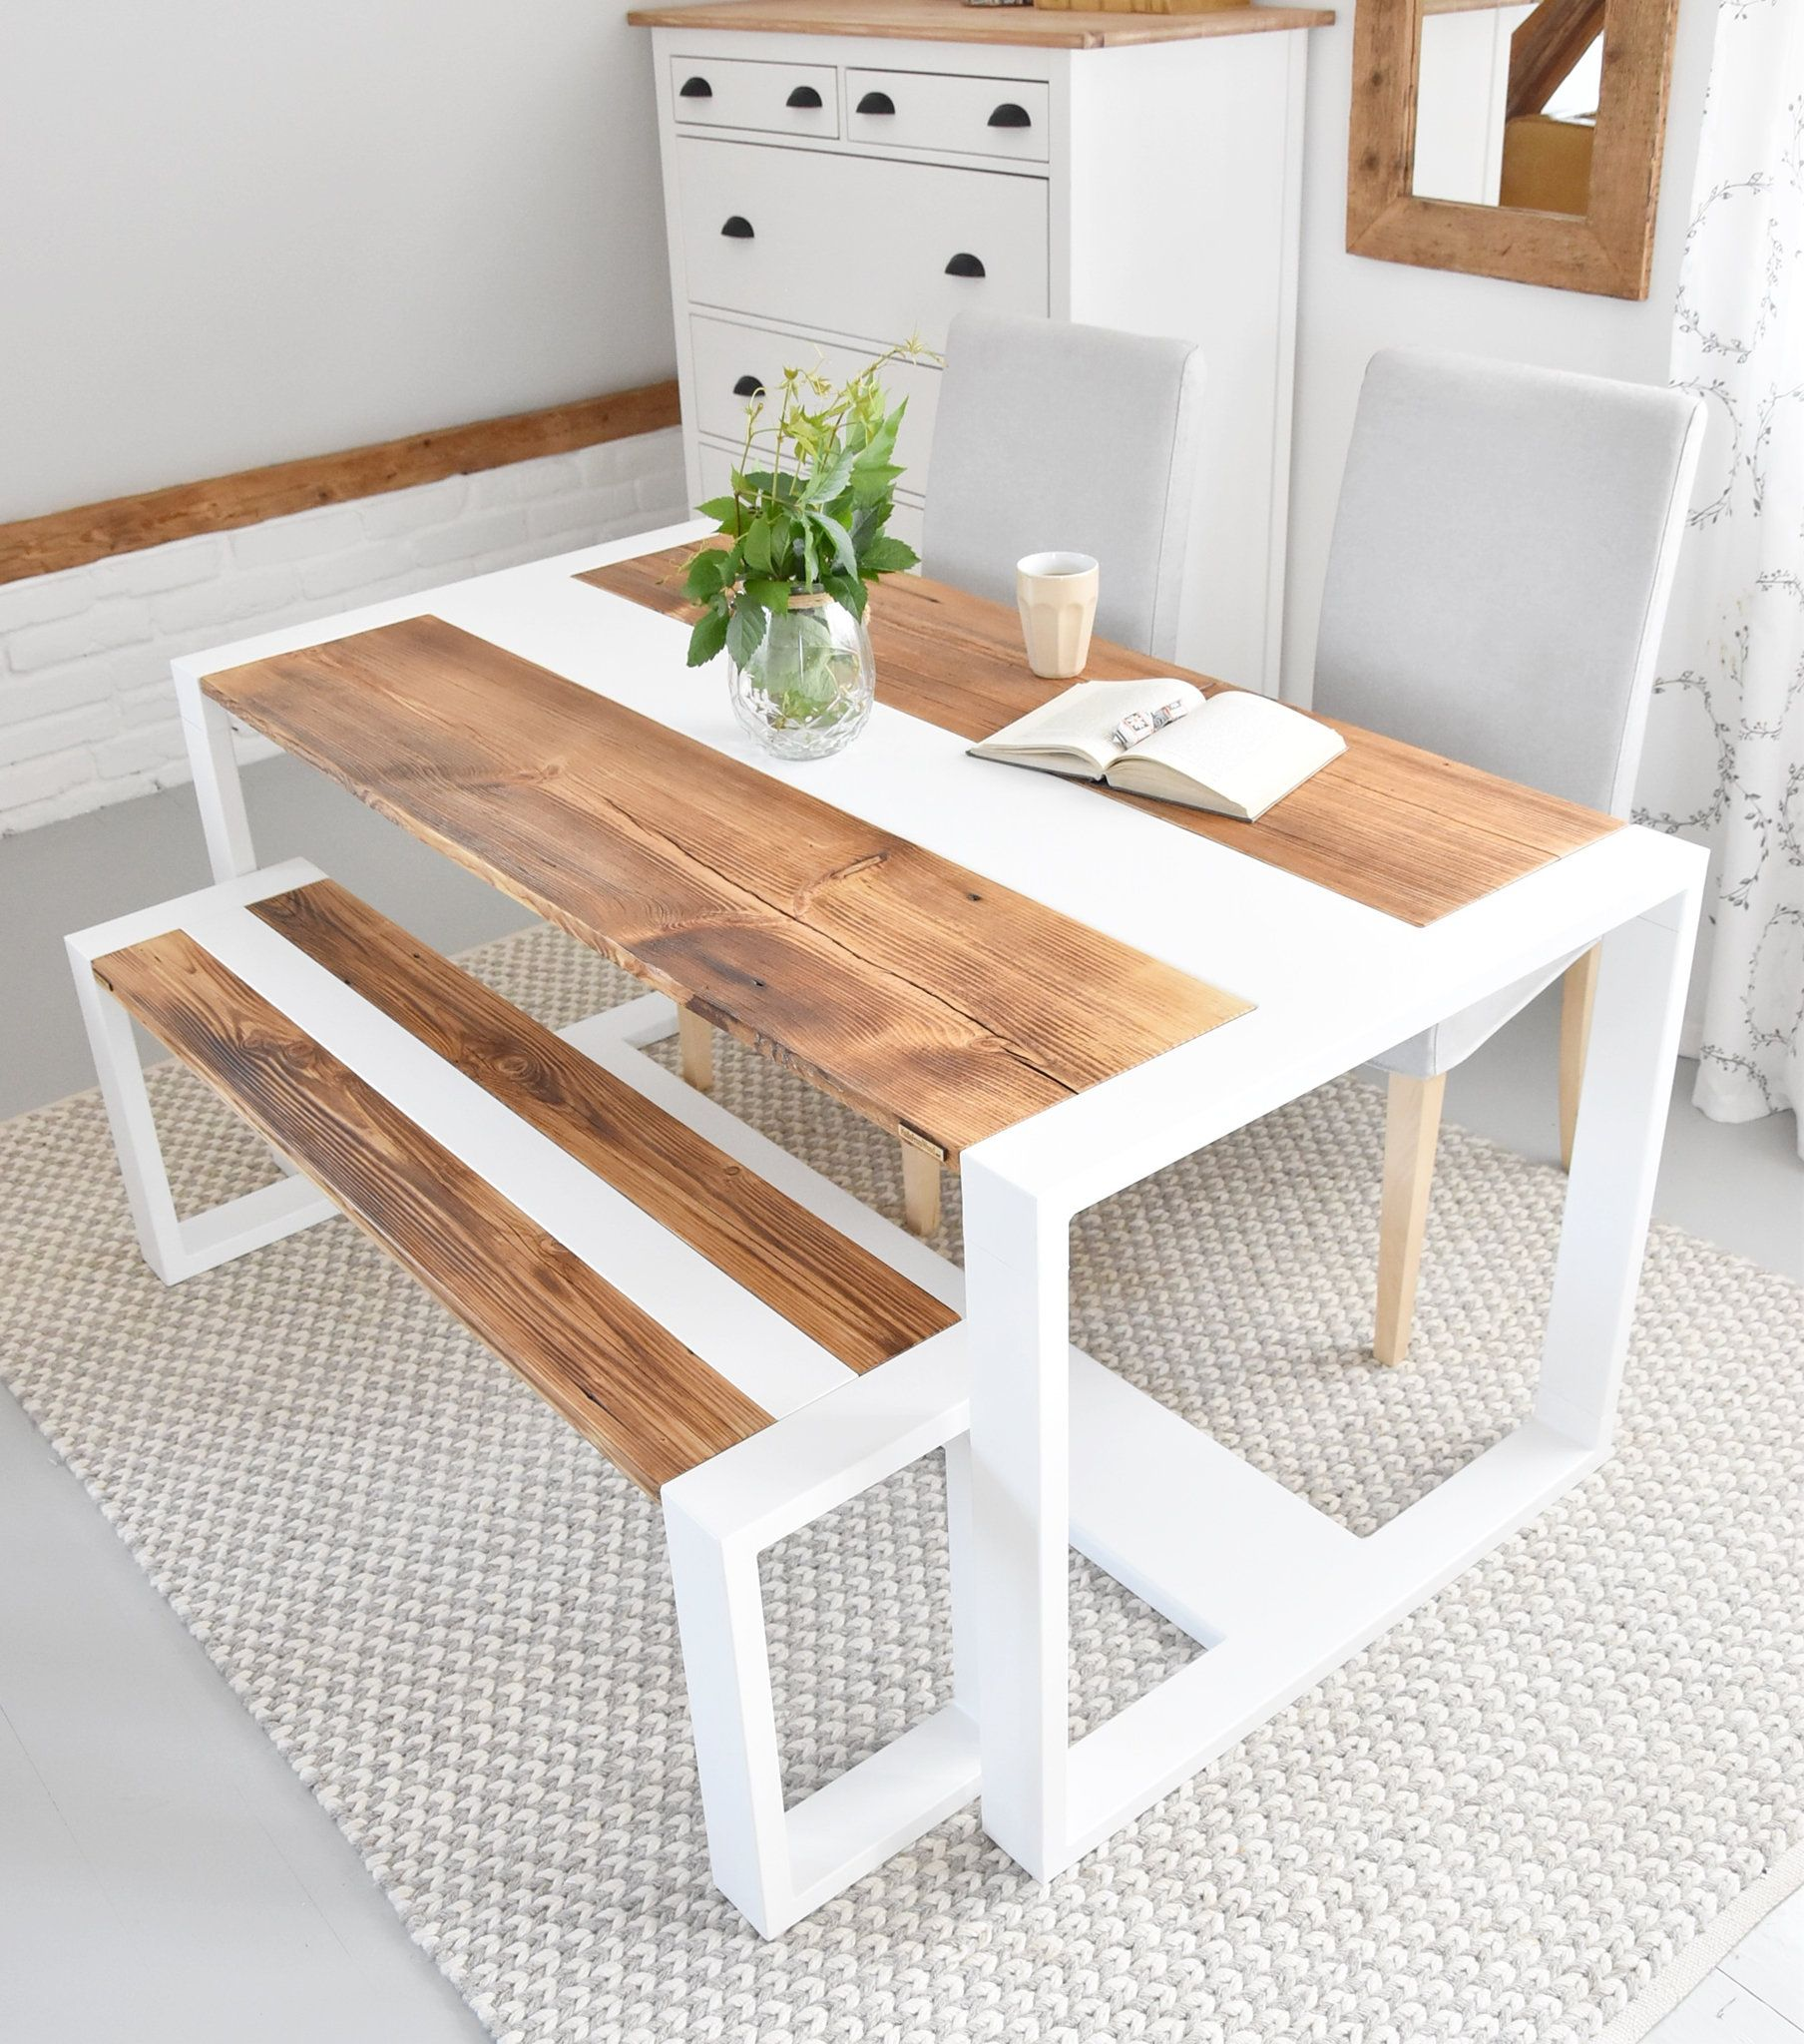 Modern Old Wood White Steel Barn Dining Table Set With Bench Etsy In 2021 Modern Wooden Kitchen Tables Wood Dining Table Modern Wood Table Rustic